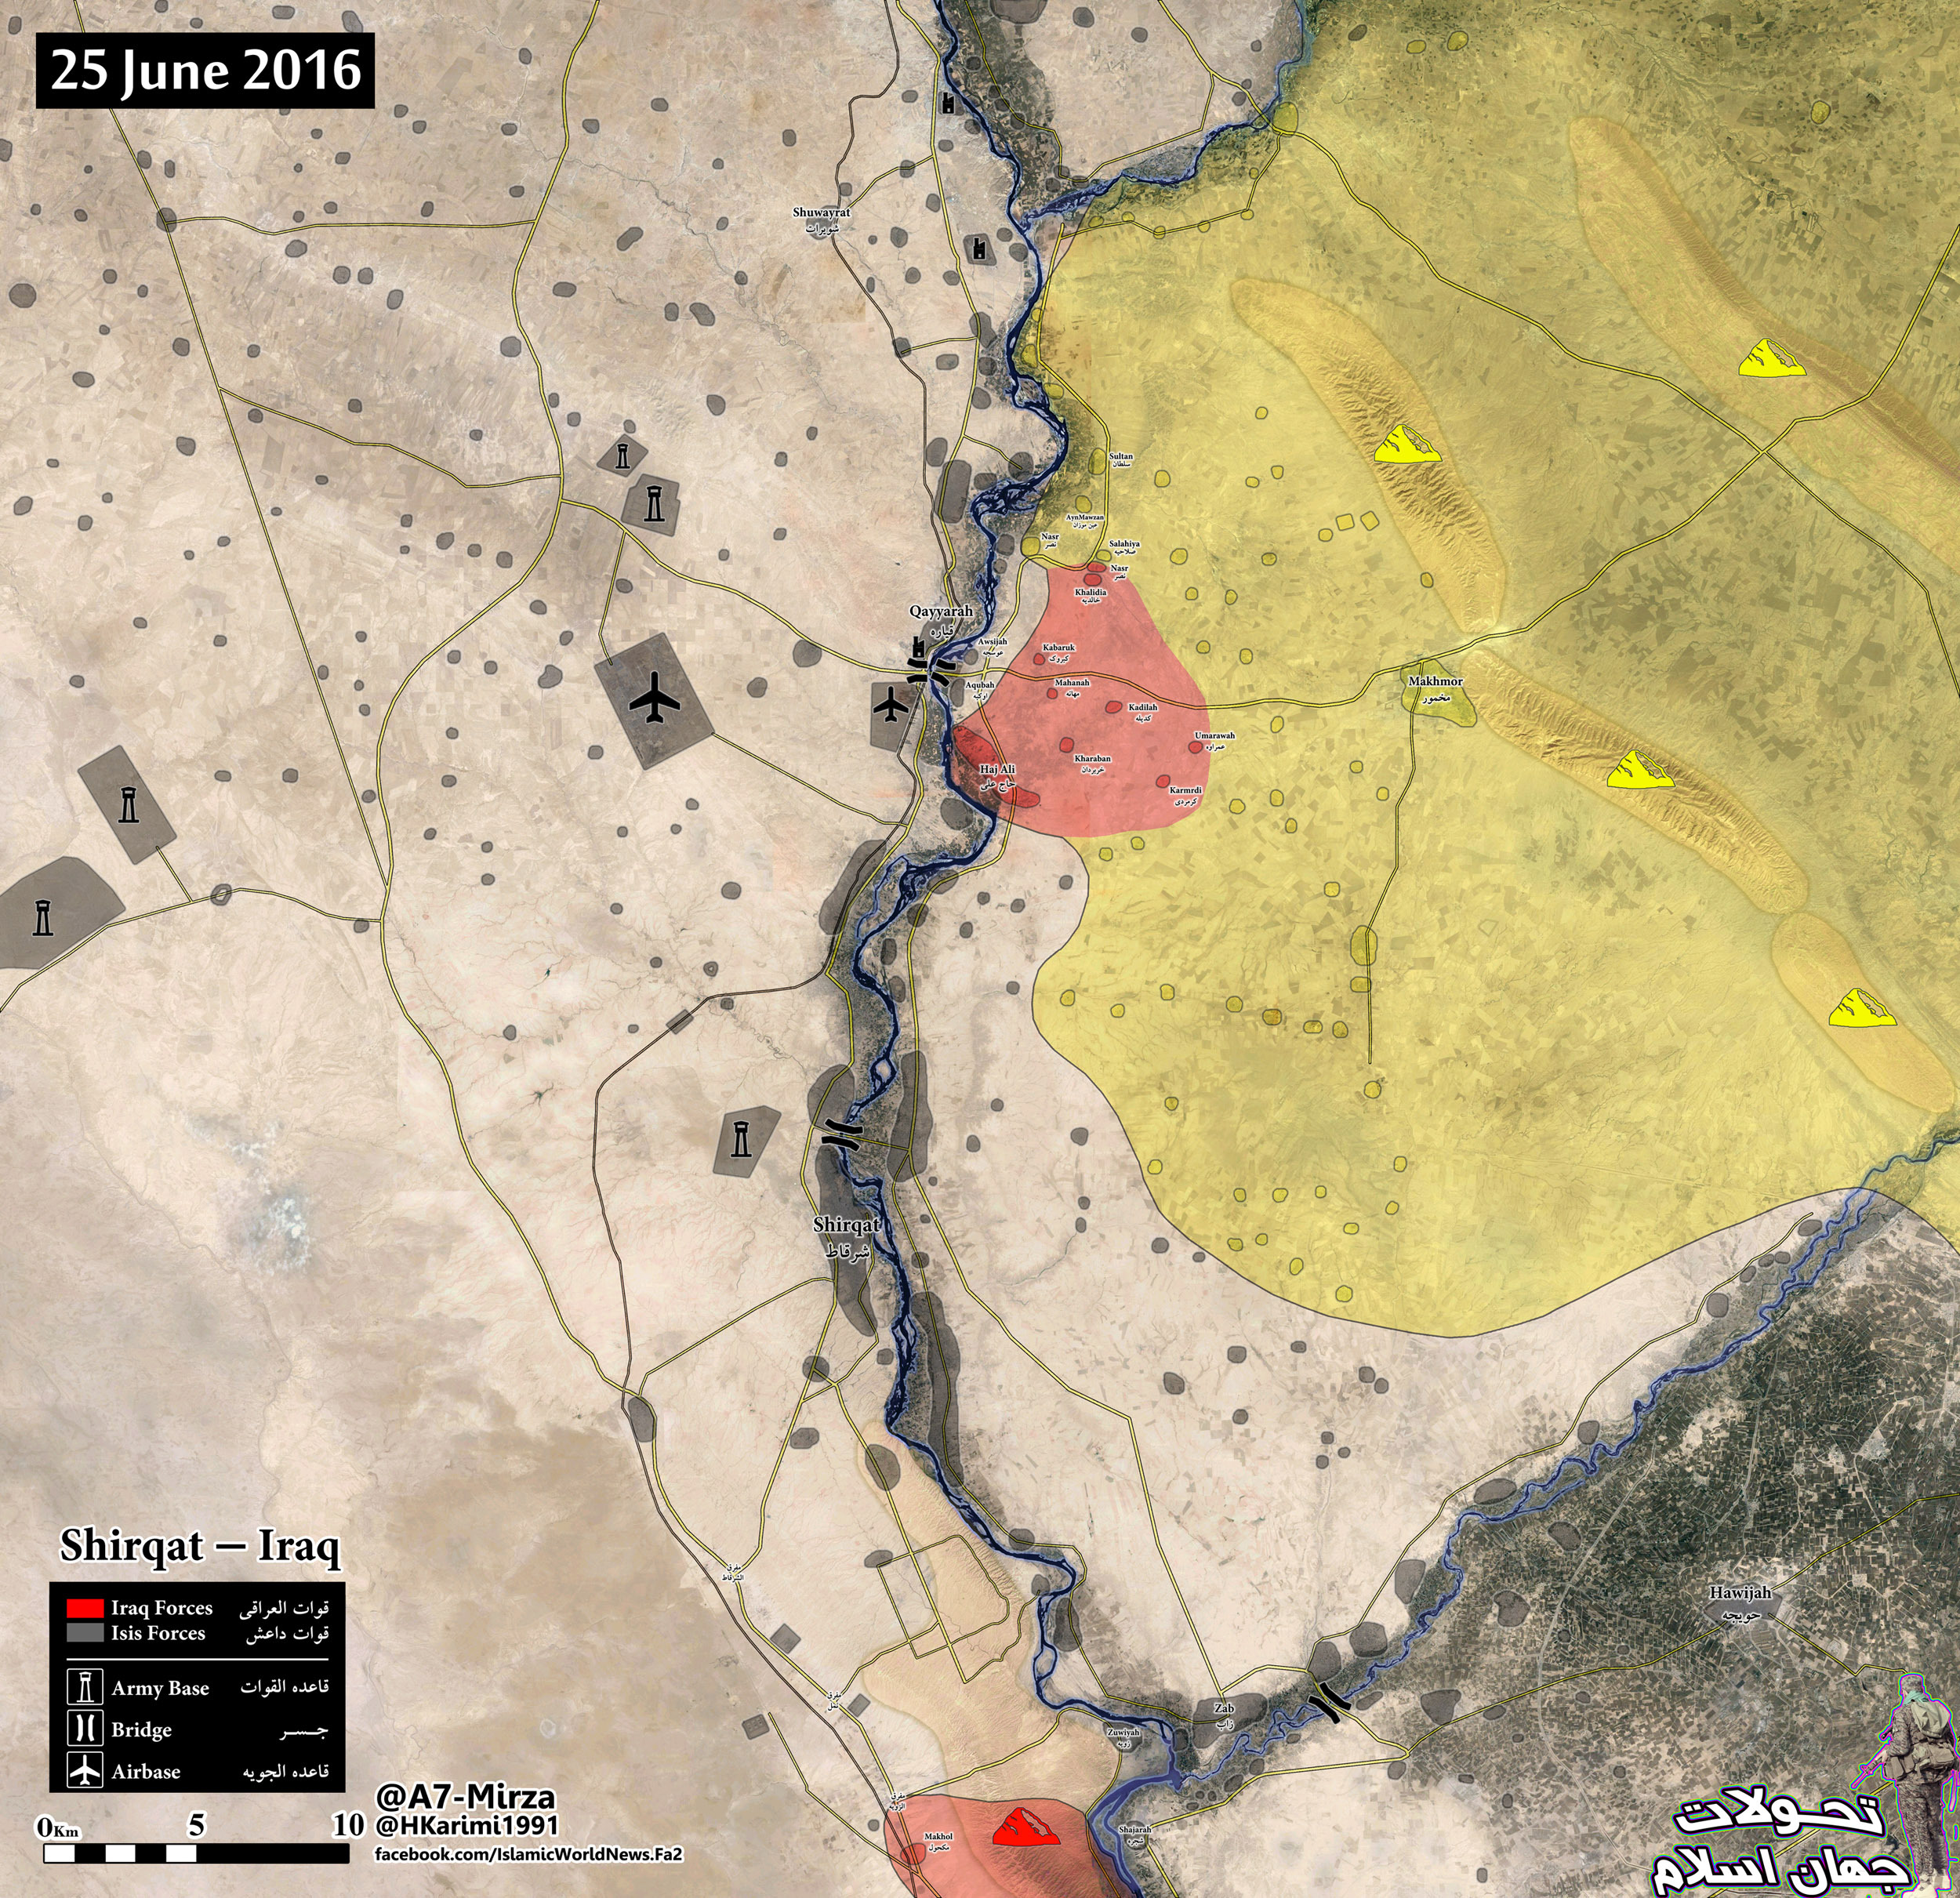 Iraqi Forces Advance in Area of Shirqat